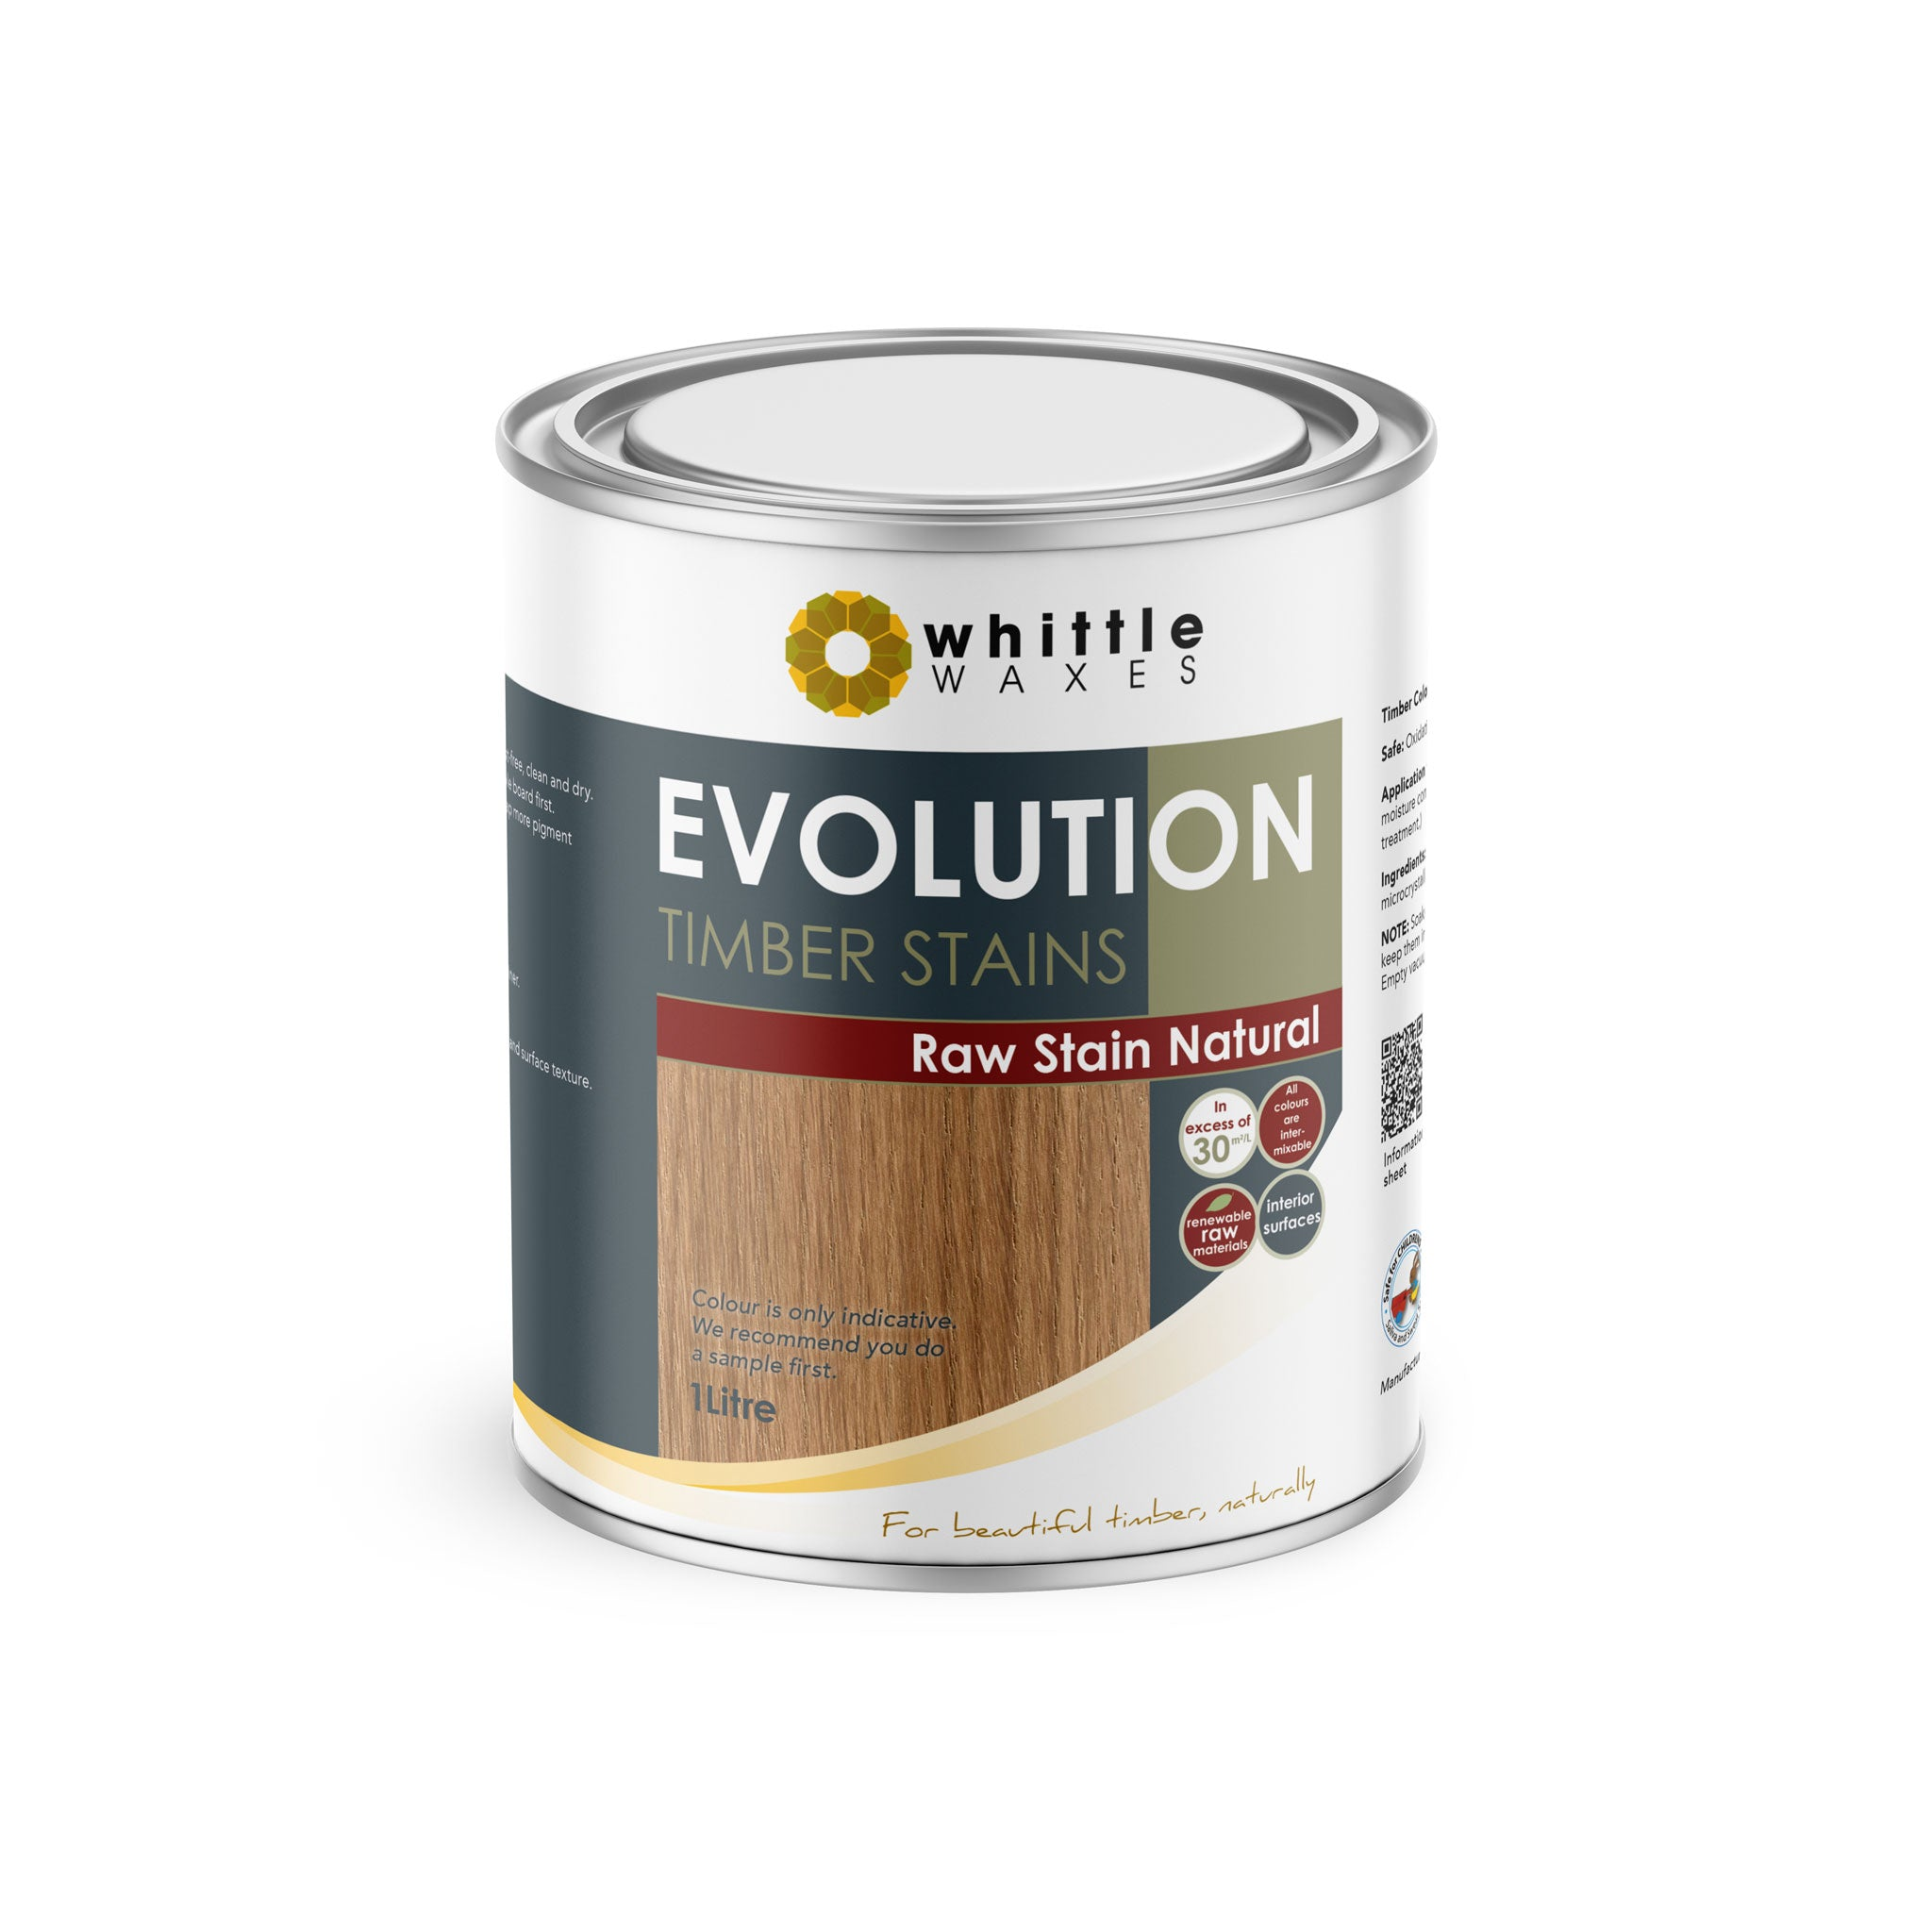 Whittle Waxes Evolution Raw Stain Natural - quality timber stain - 1 Litre